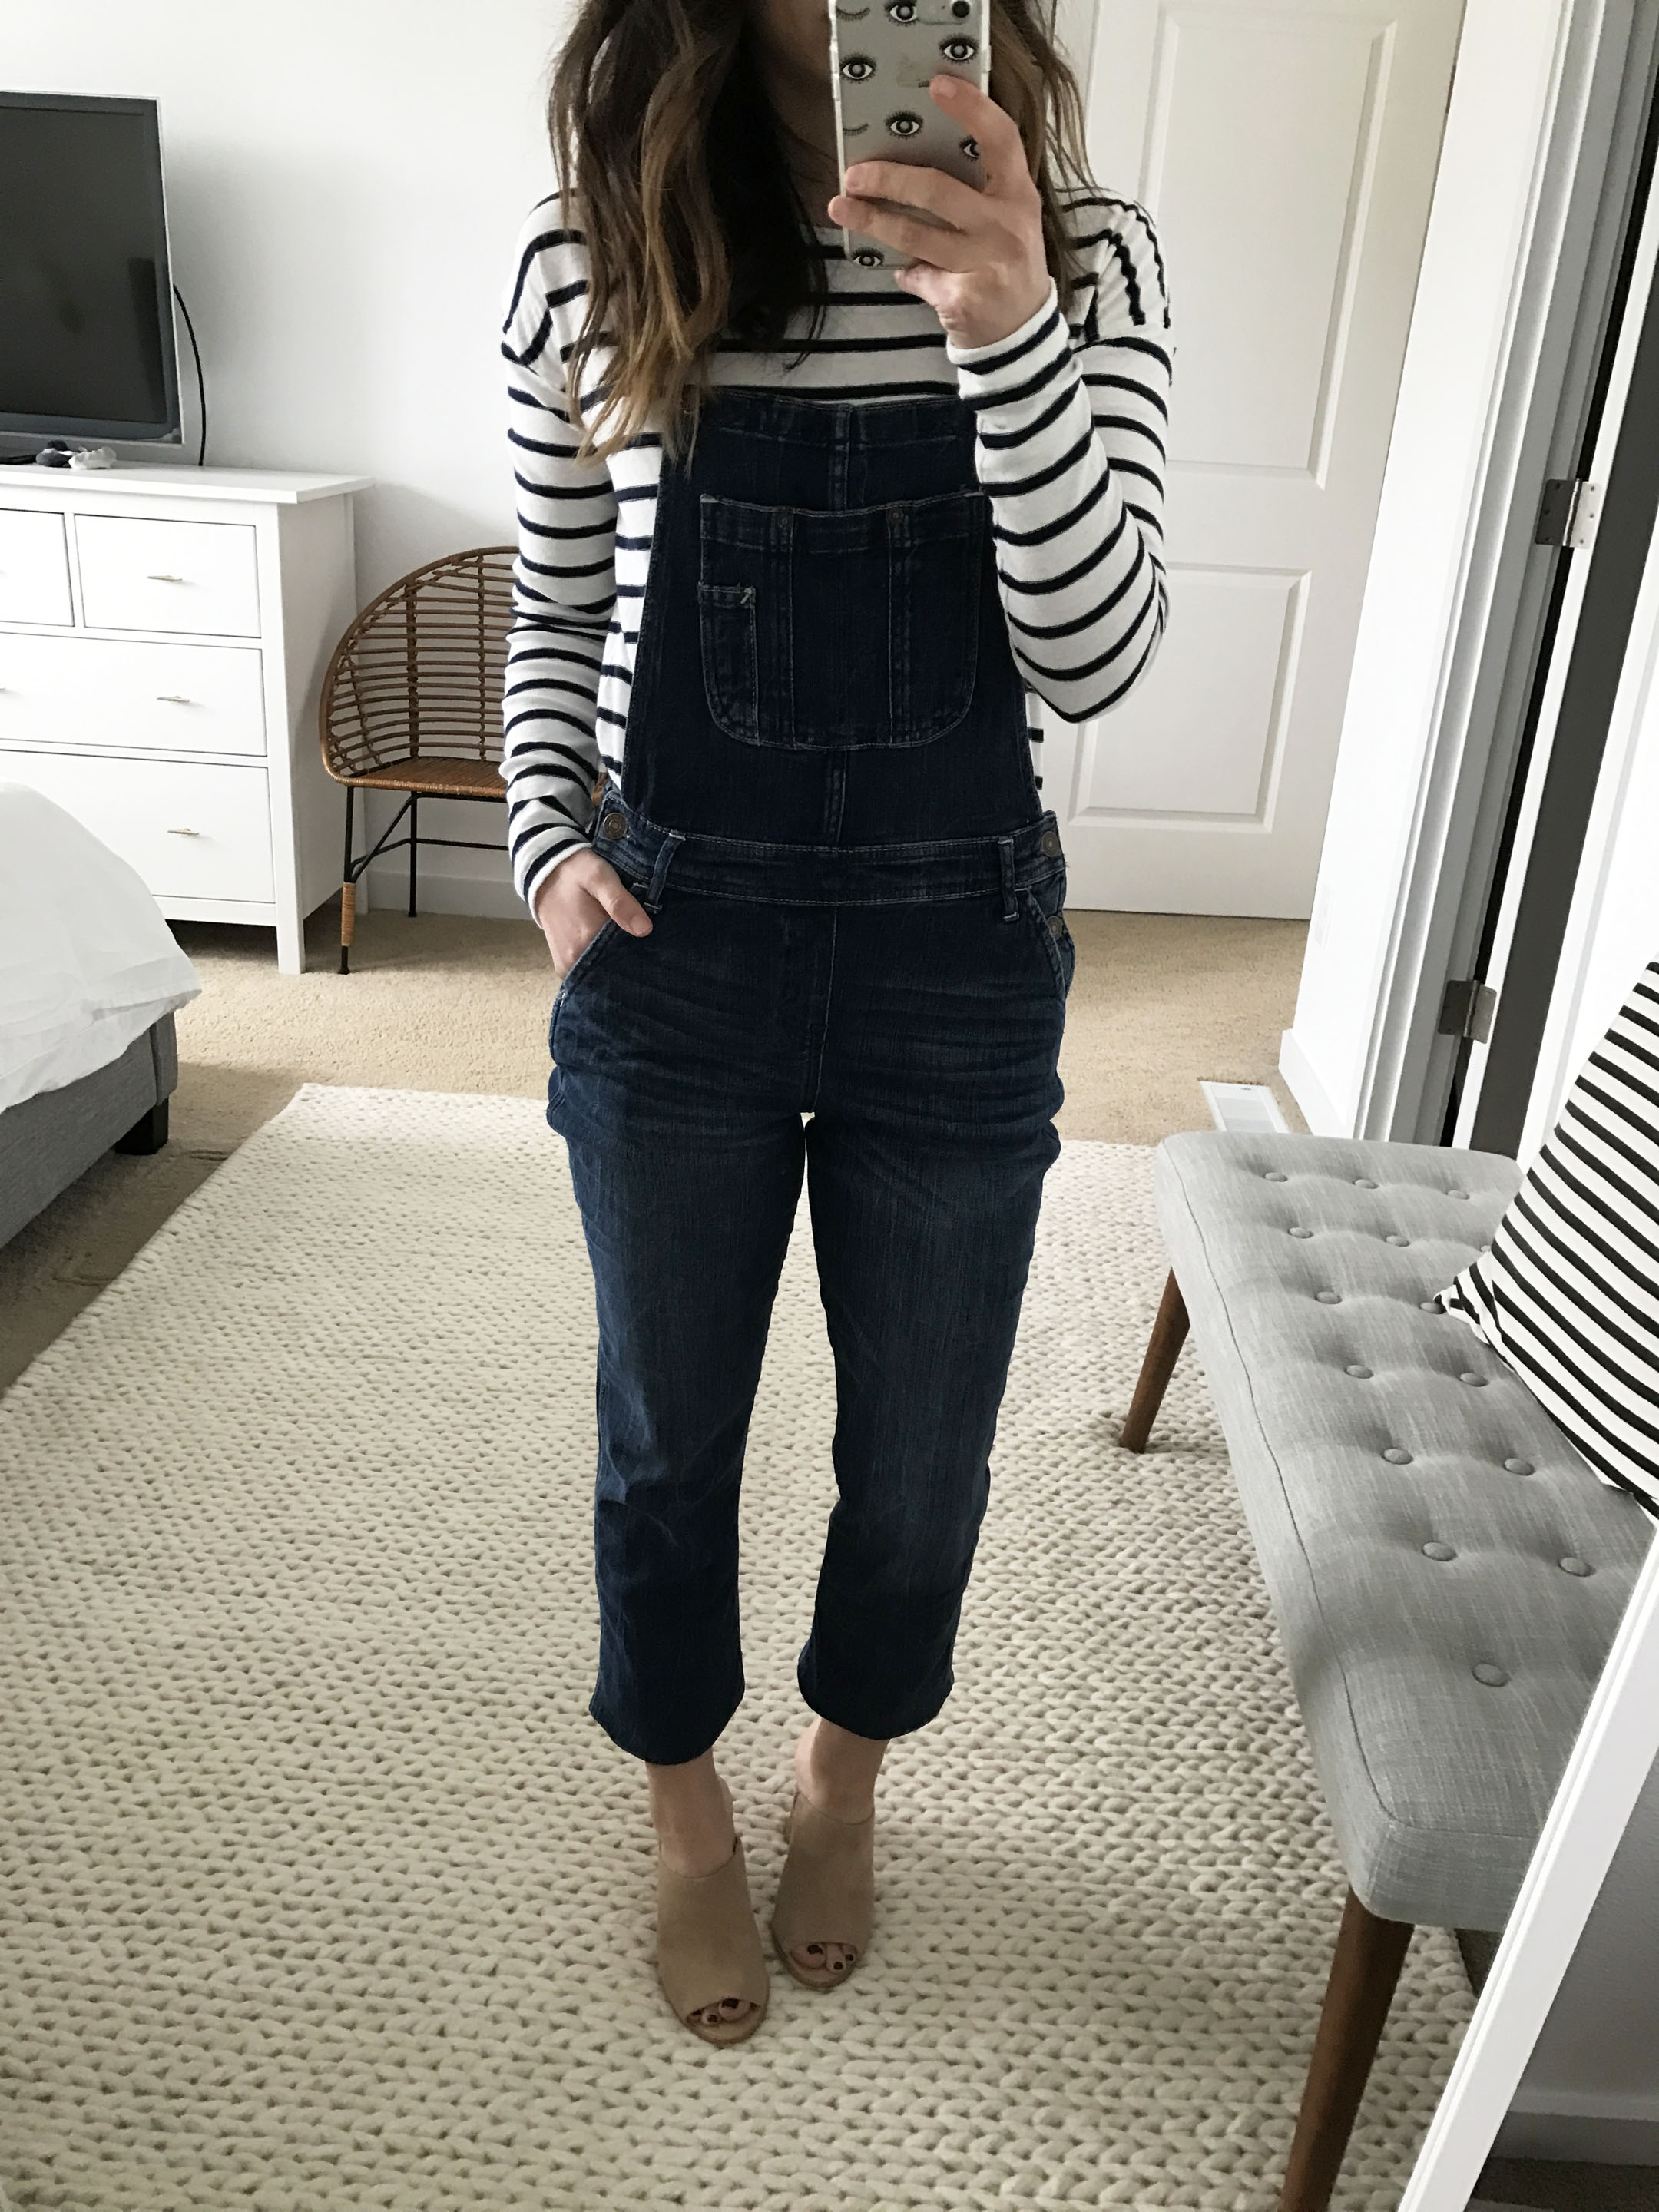 Abercrombie & Fitch overalls 4